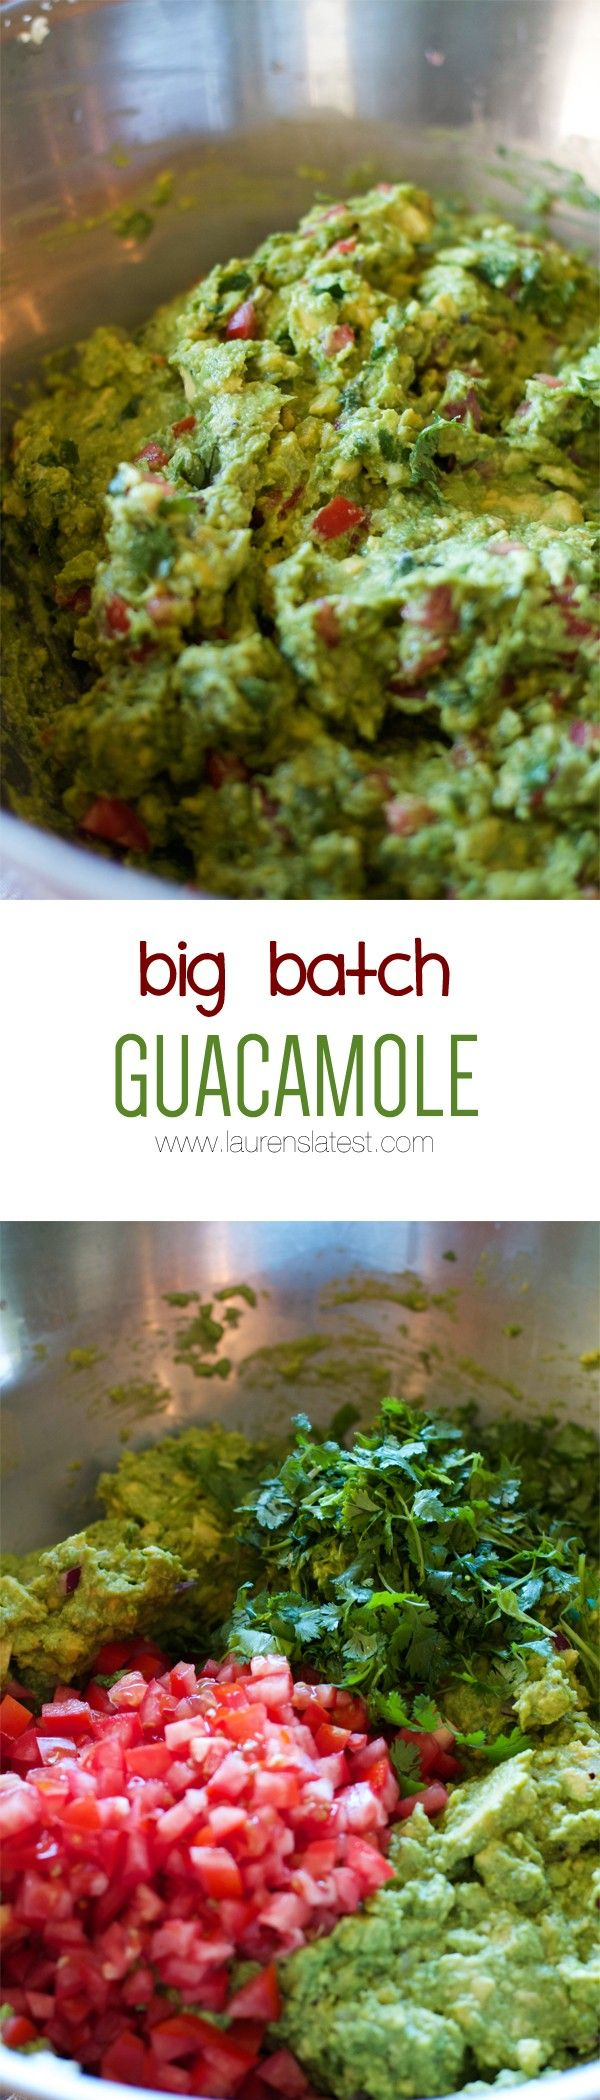 Big Batch Guacamole....tried it, LOVED IT!